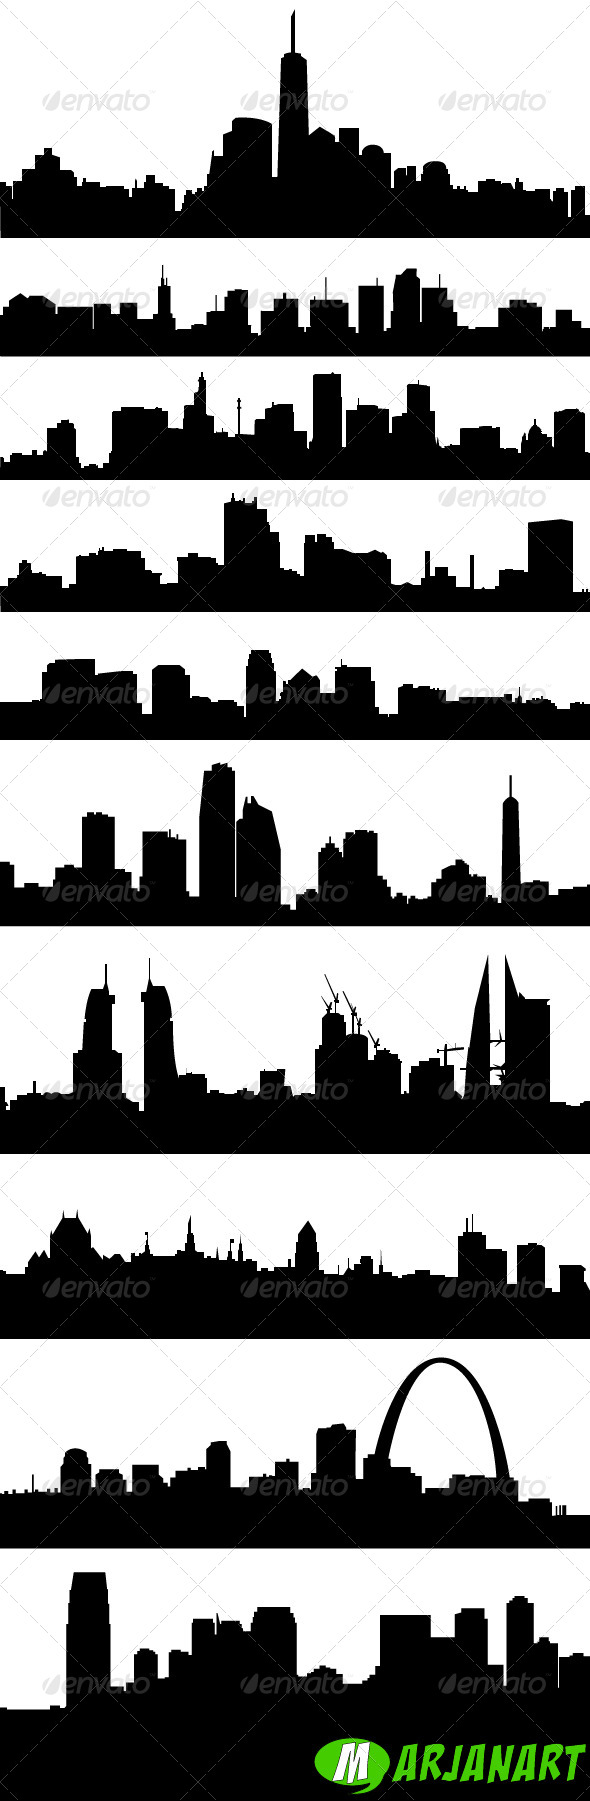 GraphicRiver City Skyline Silhouettes 6028286